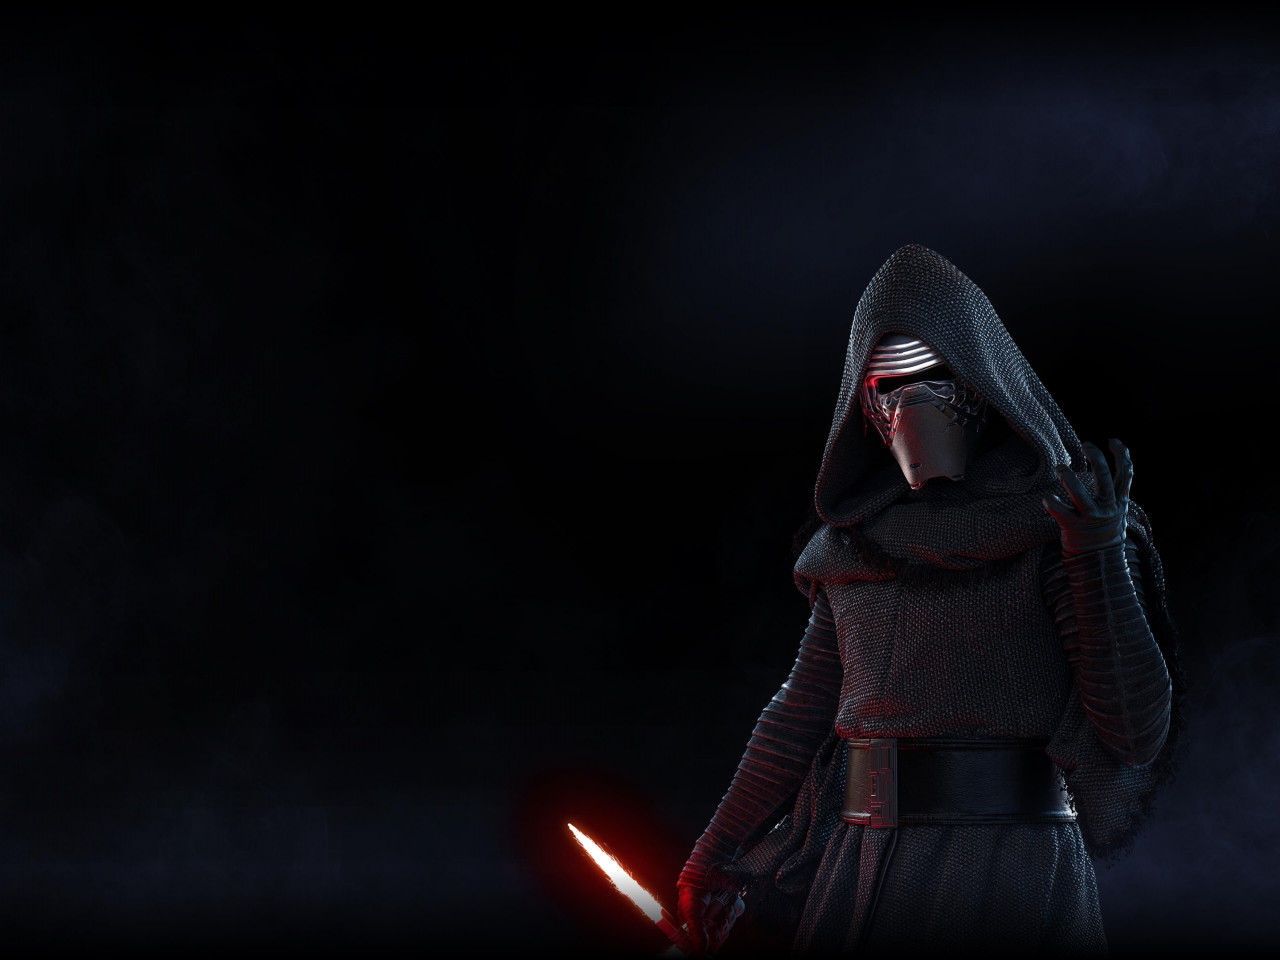 Kylo Ren from Star Wars Battlefront 2 wallpaper 1280x960